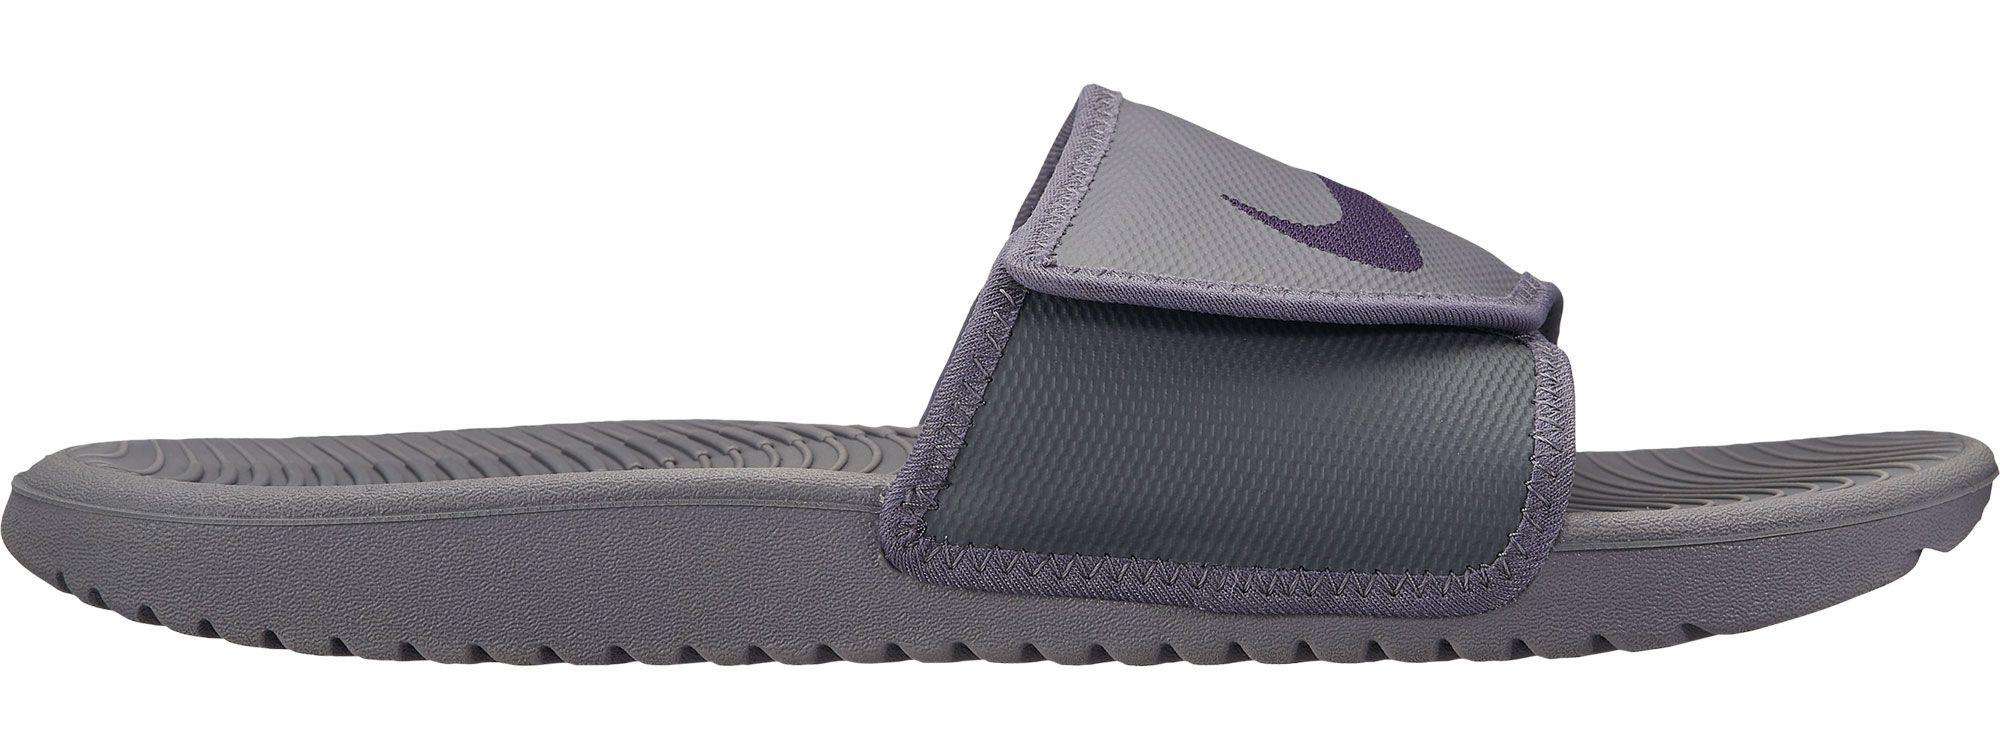 db3585742 Lyst - Nike Kawa Adjustable Slides in Gray for Men